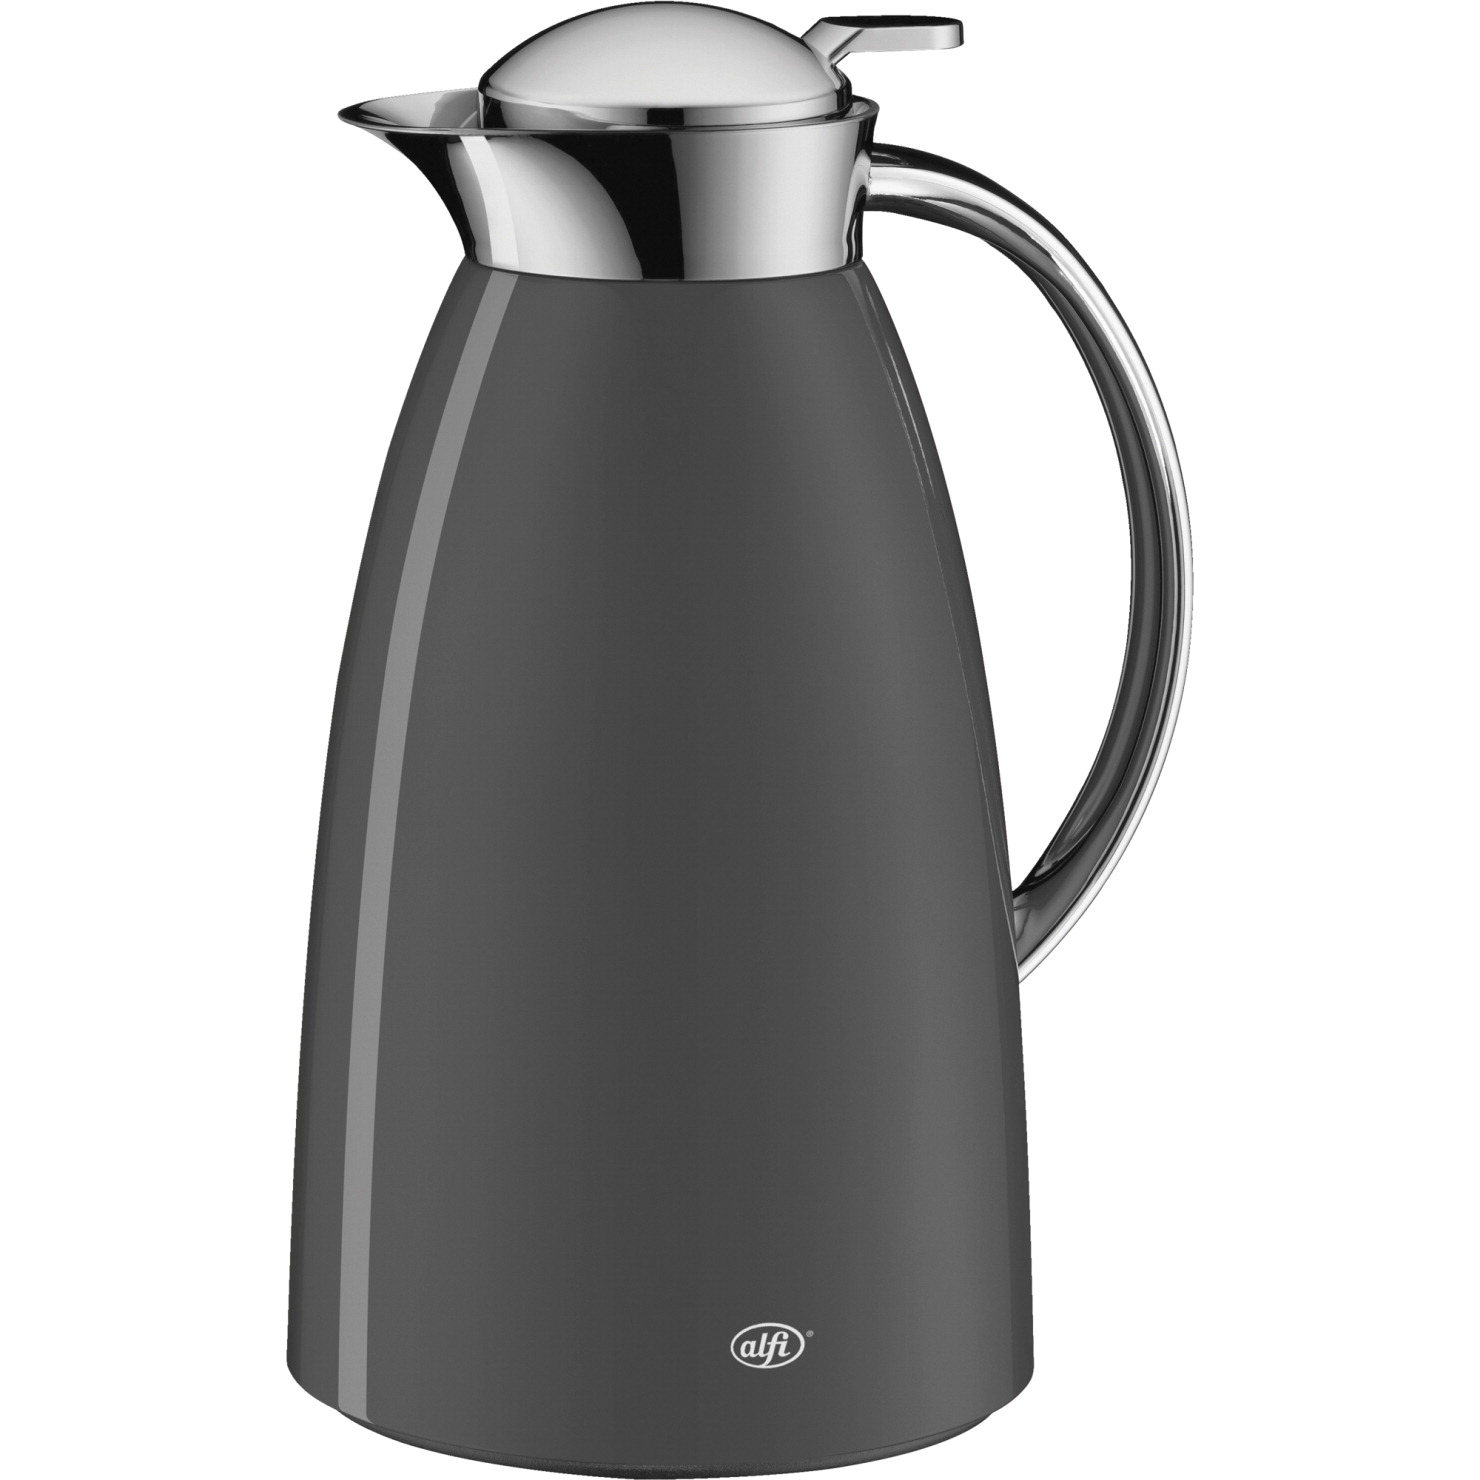 thermos alfi gusto glass vacuum insulated lacquered metal carafe 1 l - Glass Thermos